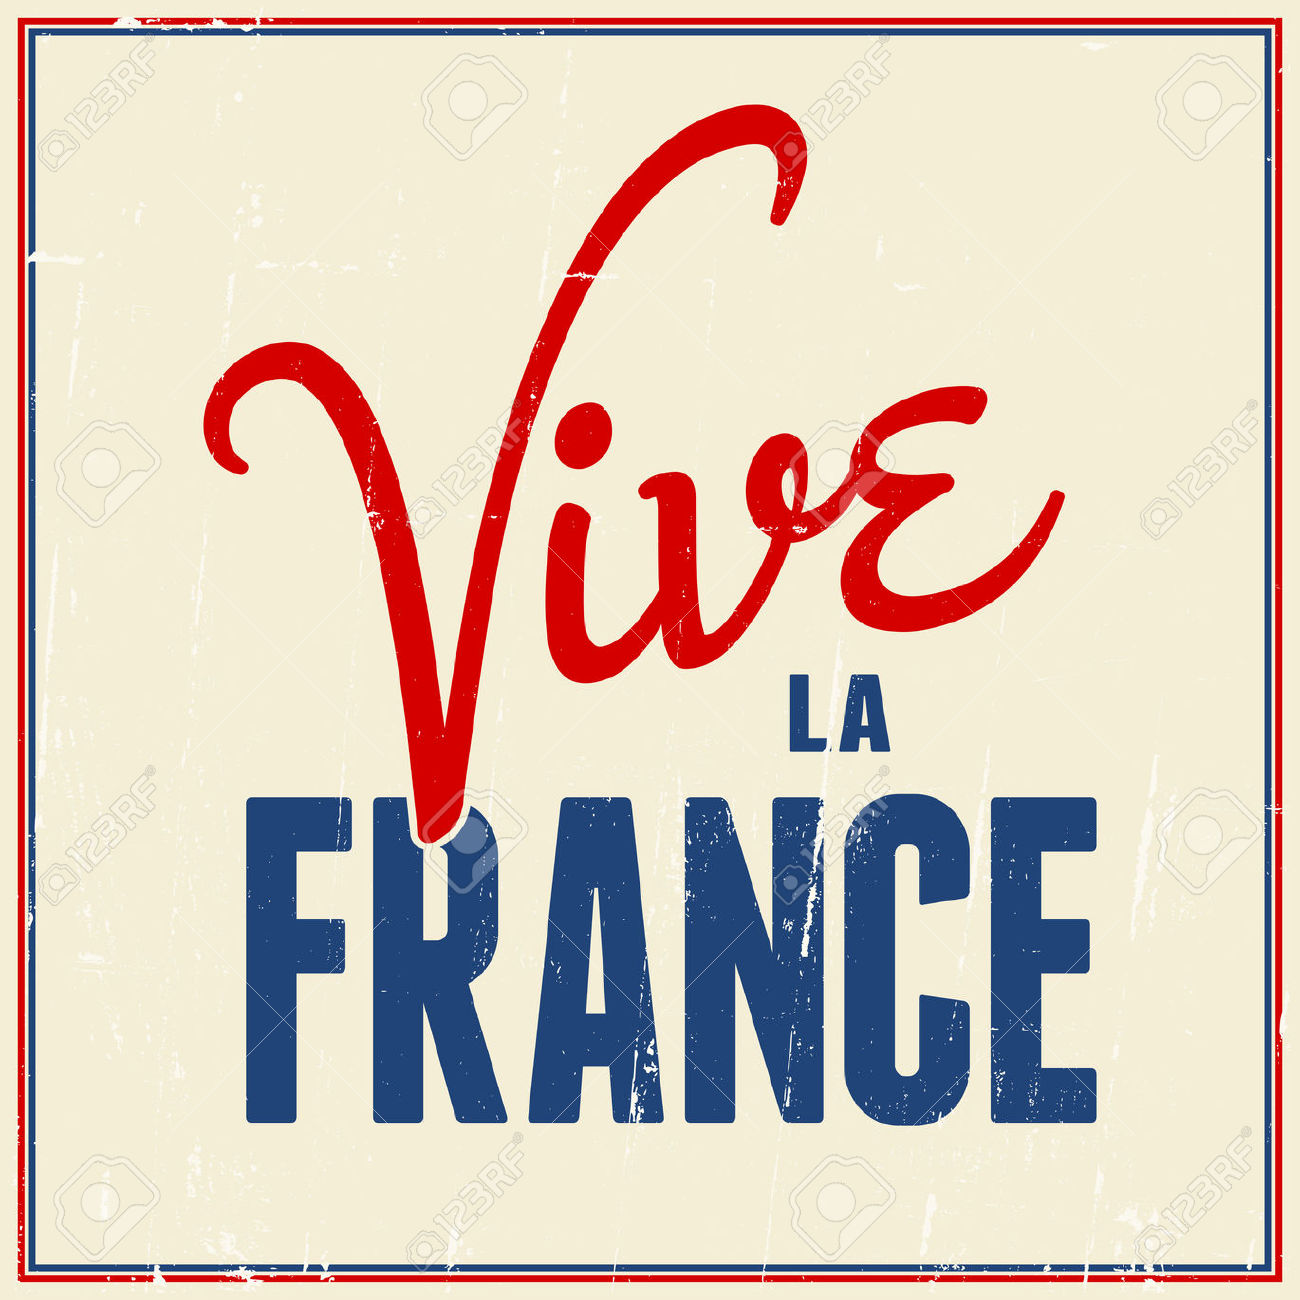 29828849 text design greeting card for the french national day july 29828849 text design greeting card for the french national day july 14 vive la france long live francestock vector m4hsunfo